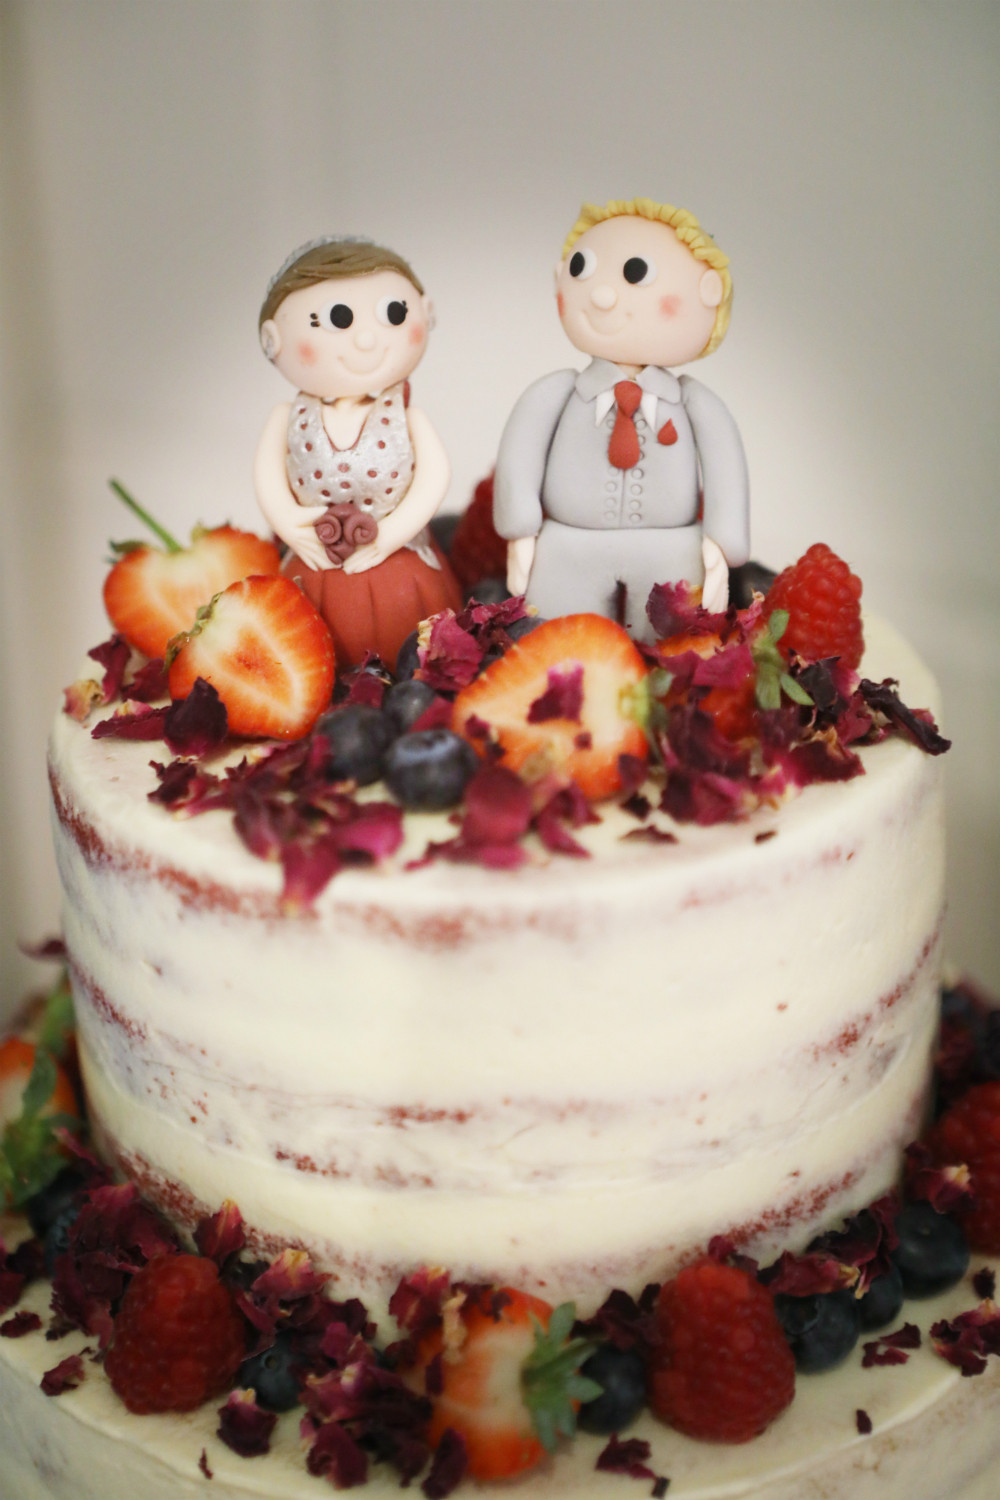 Bride & groom toppers that are gluten-free and vegan